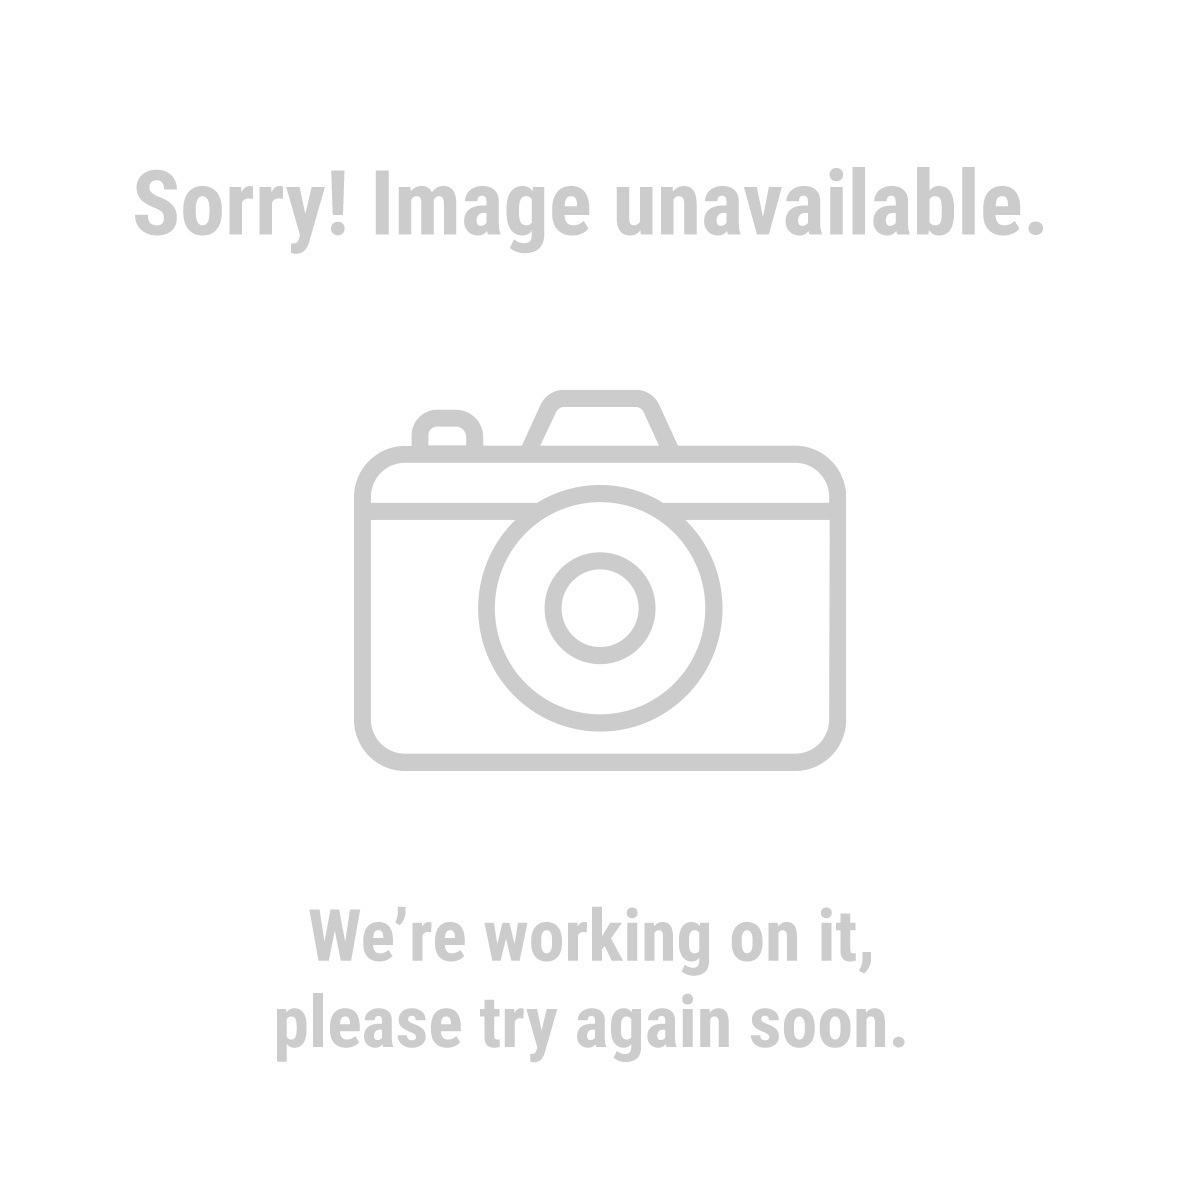 "Chicago Electric Welding Systems 69531 0.035"" ER70S-6 Carbon Steel Welding Wire, 10 Lb. Roll"